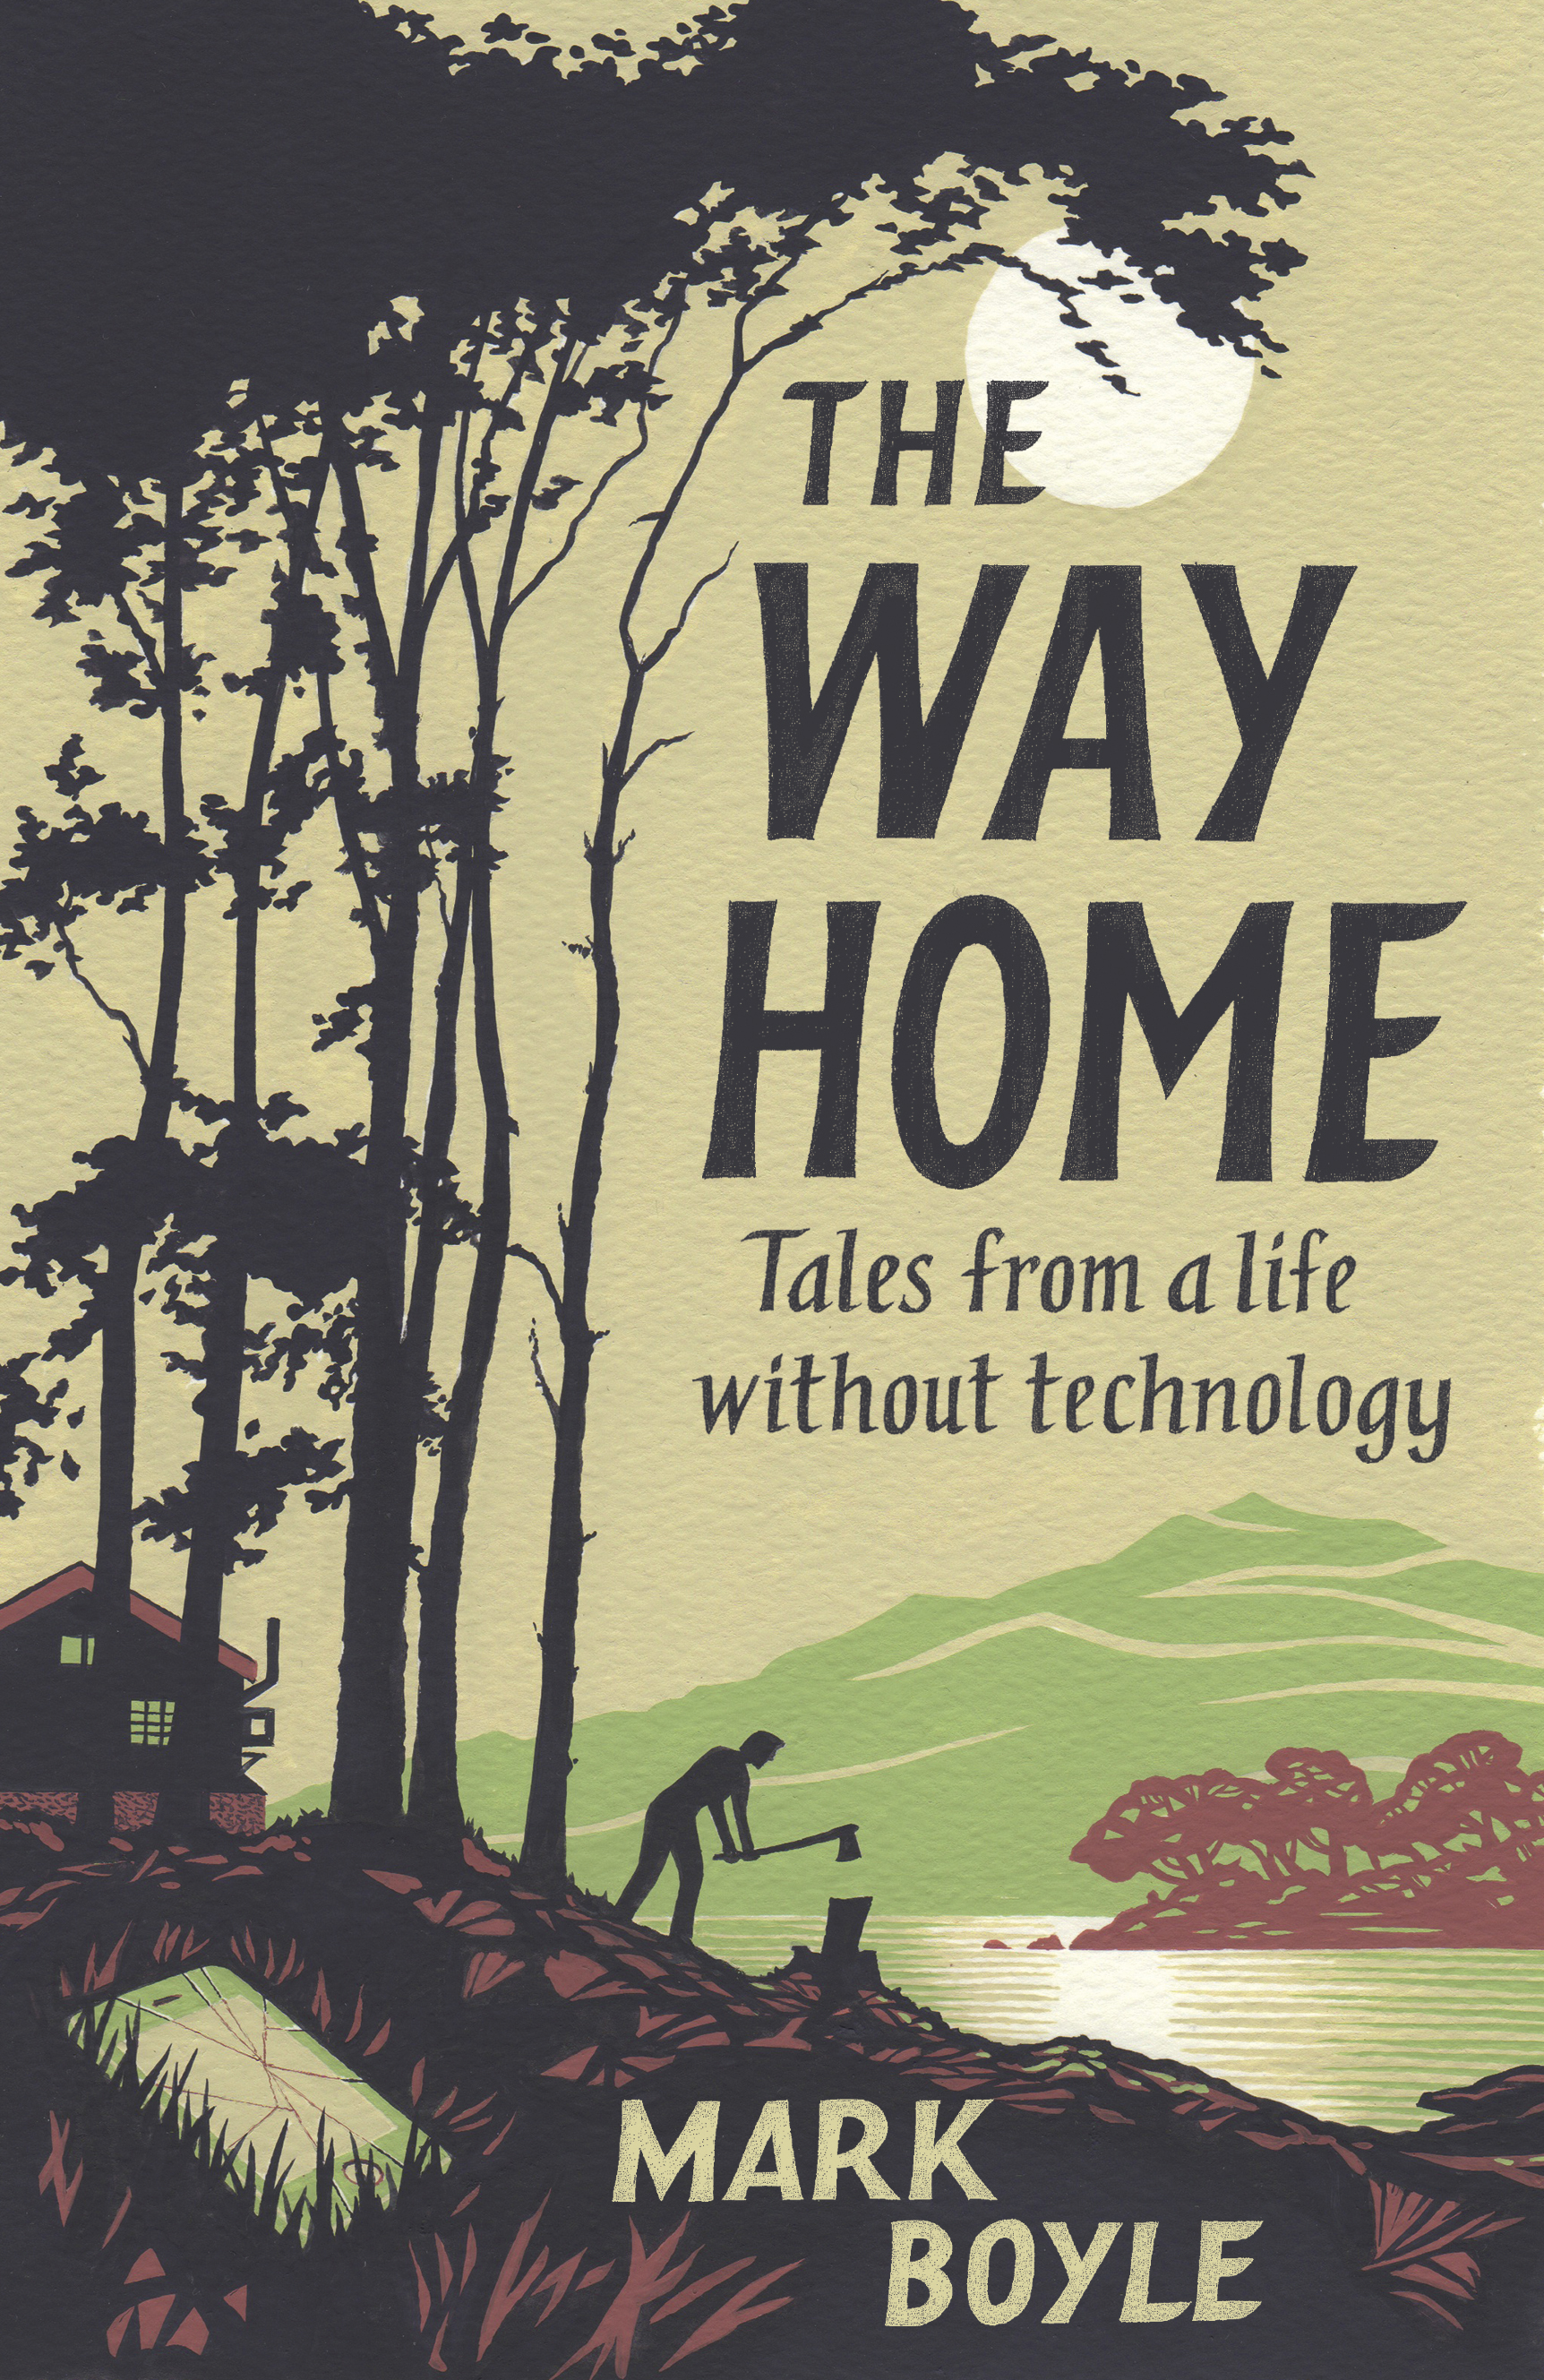 The Way Home: Tales from a Life Without Technology, out June 11th, reviewed - Irish Tech News